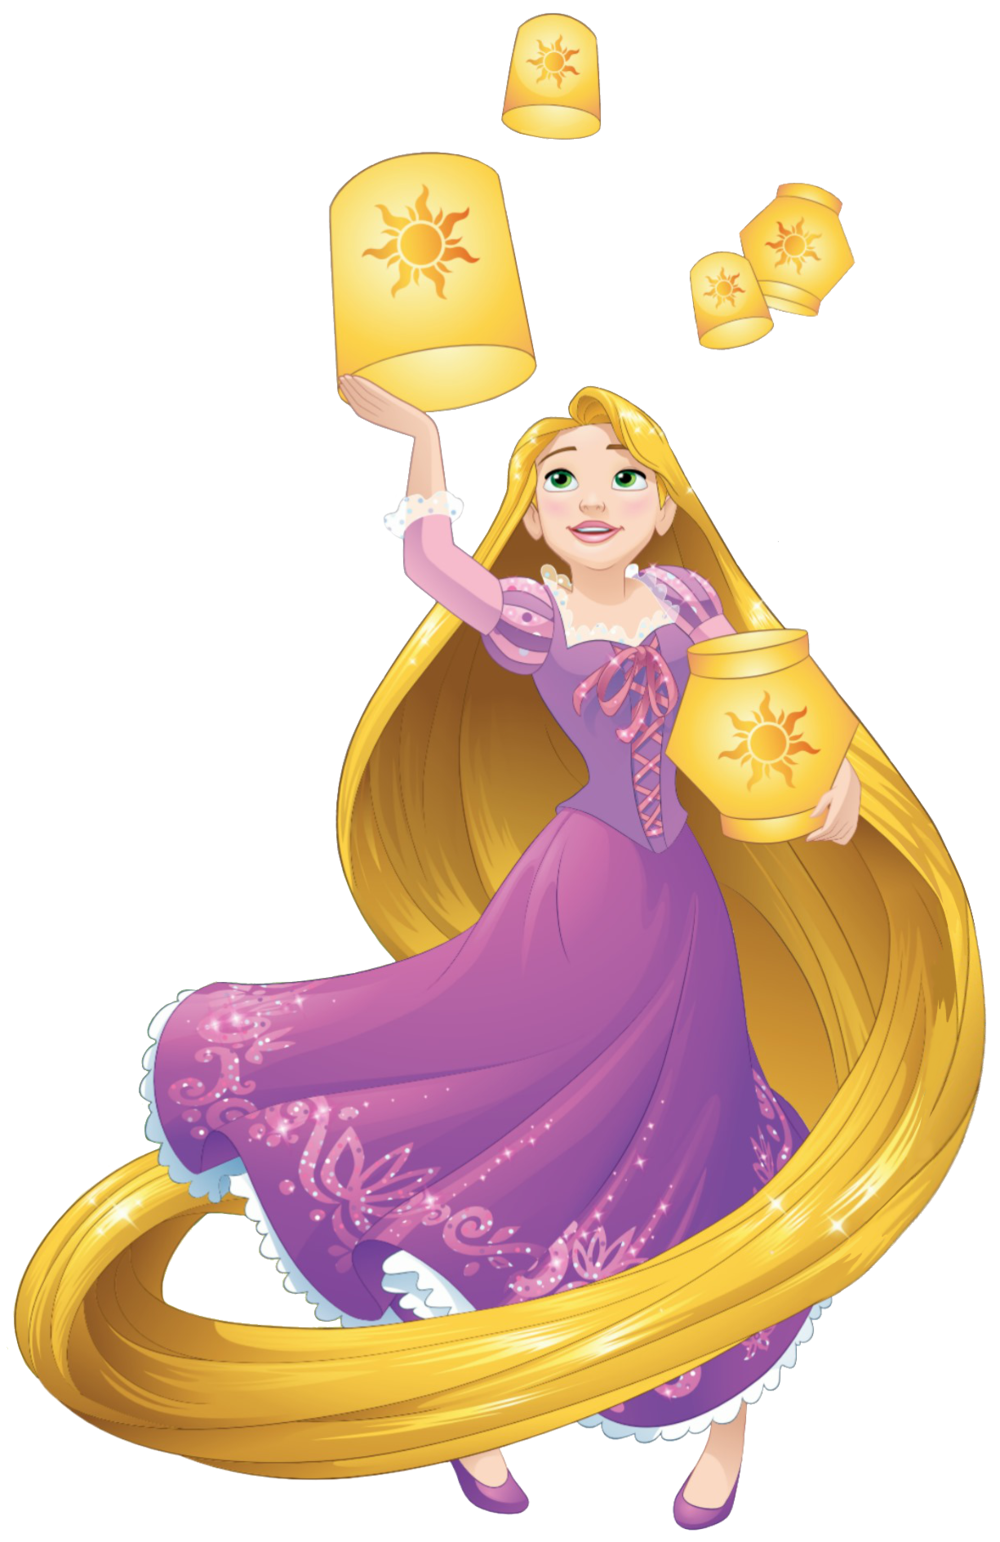 Gallery tangled disney princess. Rapunzel clipart wiki